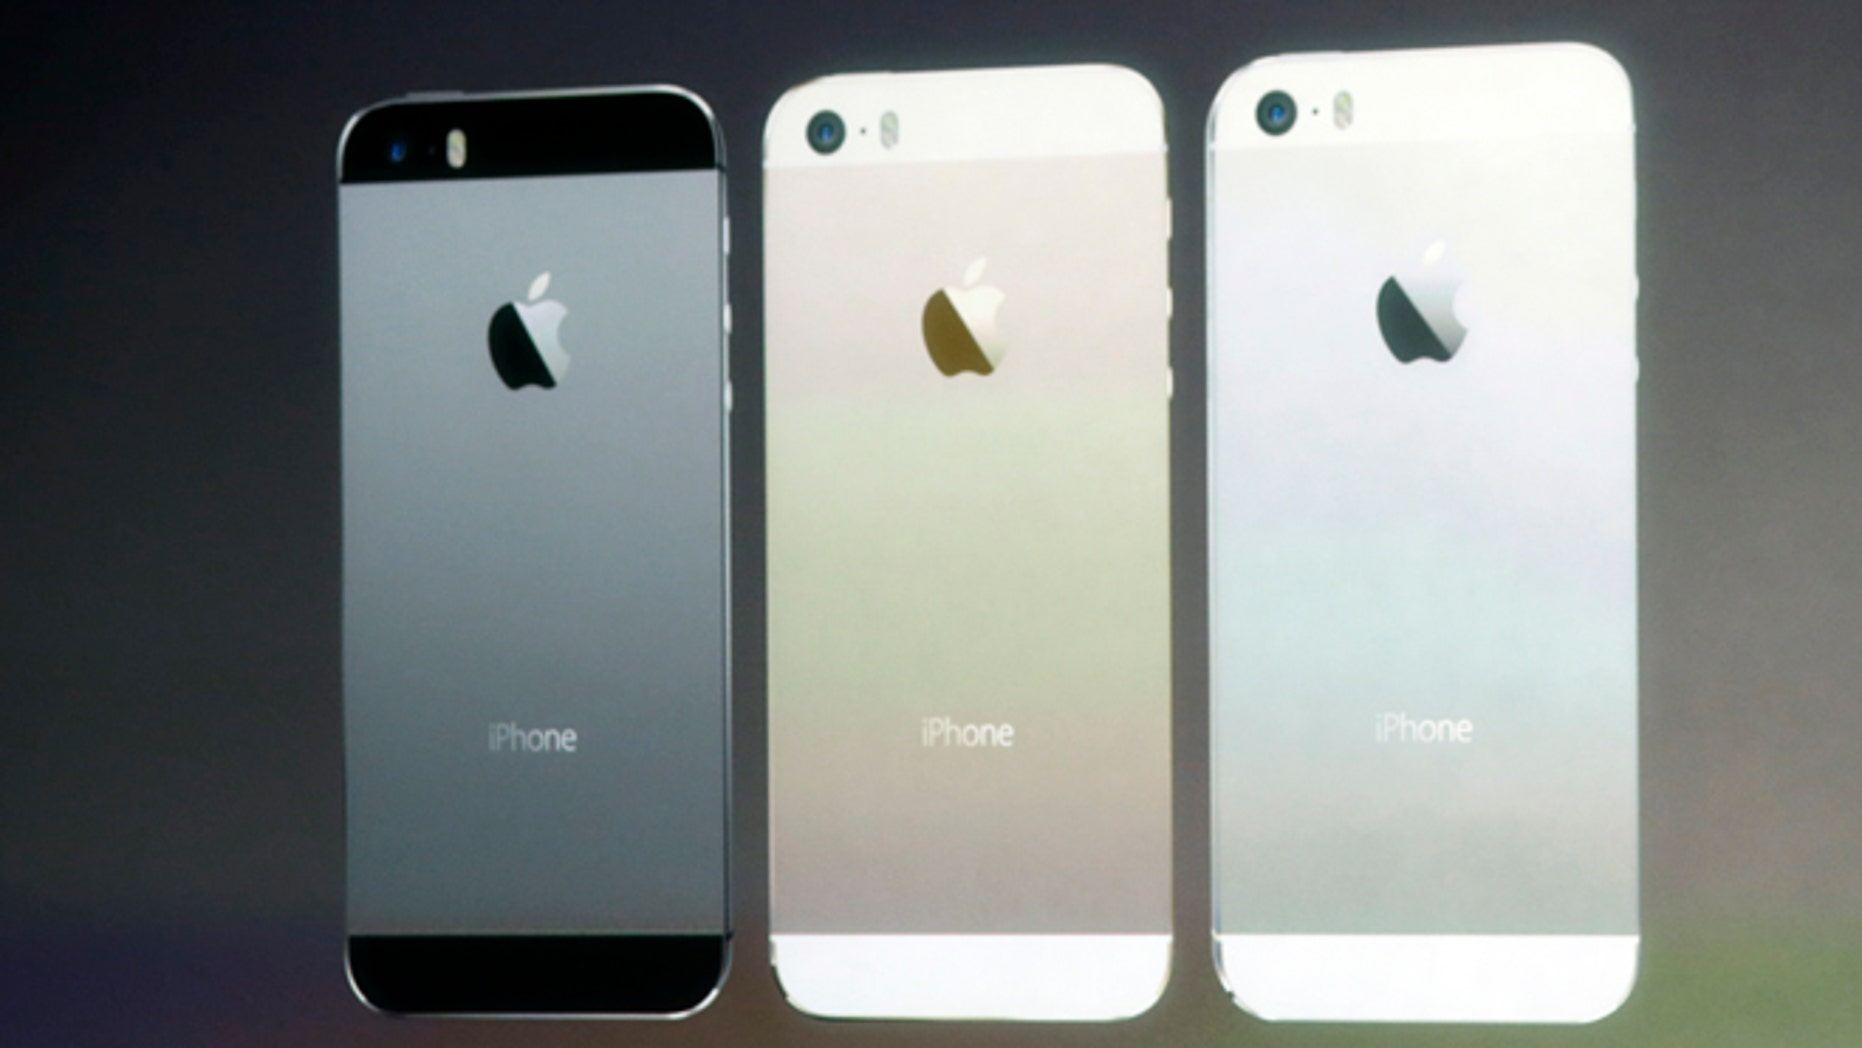 There's an easy way to fix iPhones bricked by the 1970 date